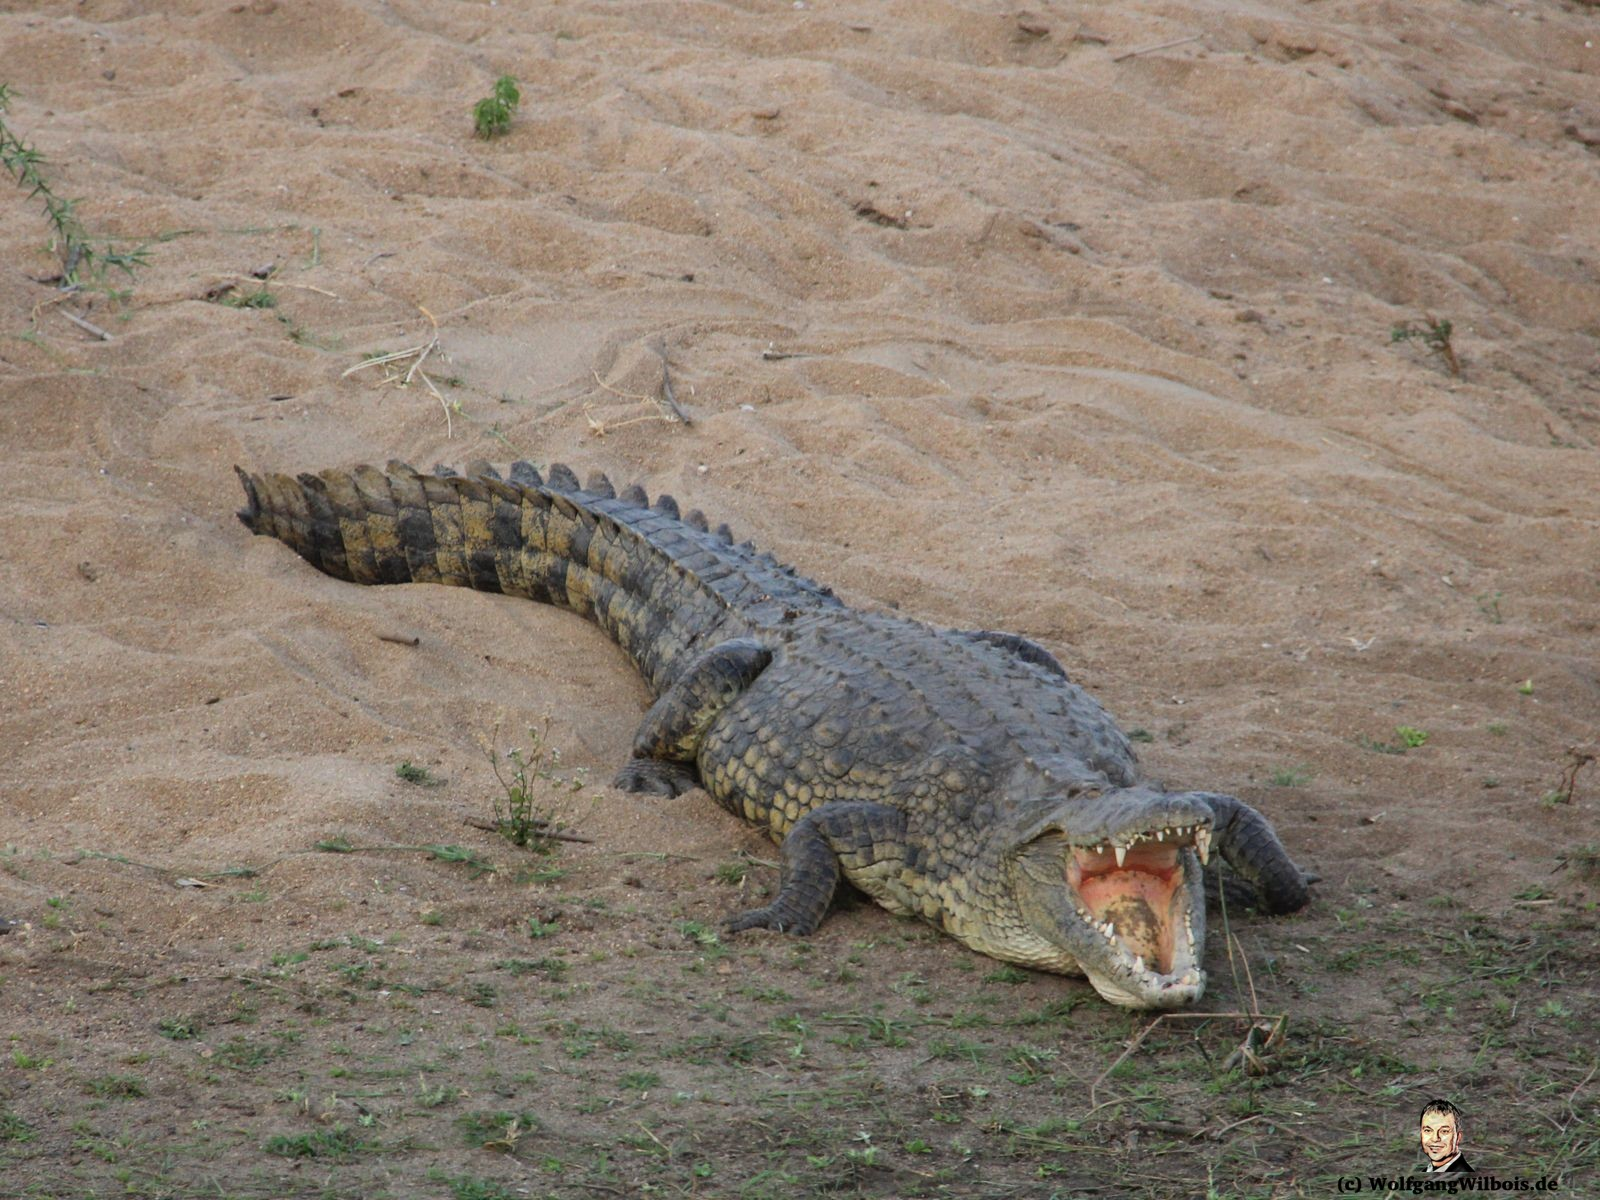 Suedafrika Krueger Nationalpark Krokodil Crocodile Bridge